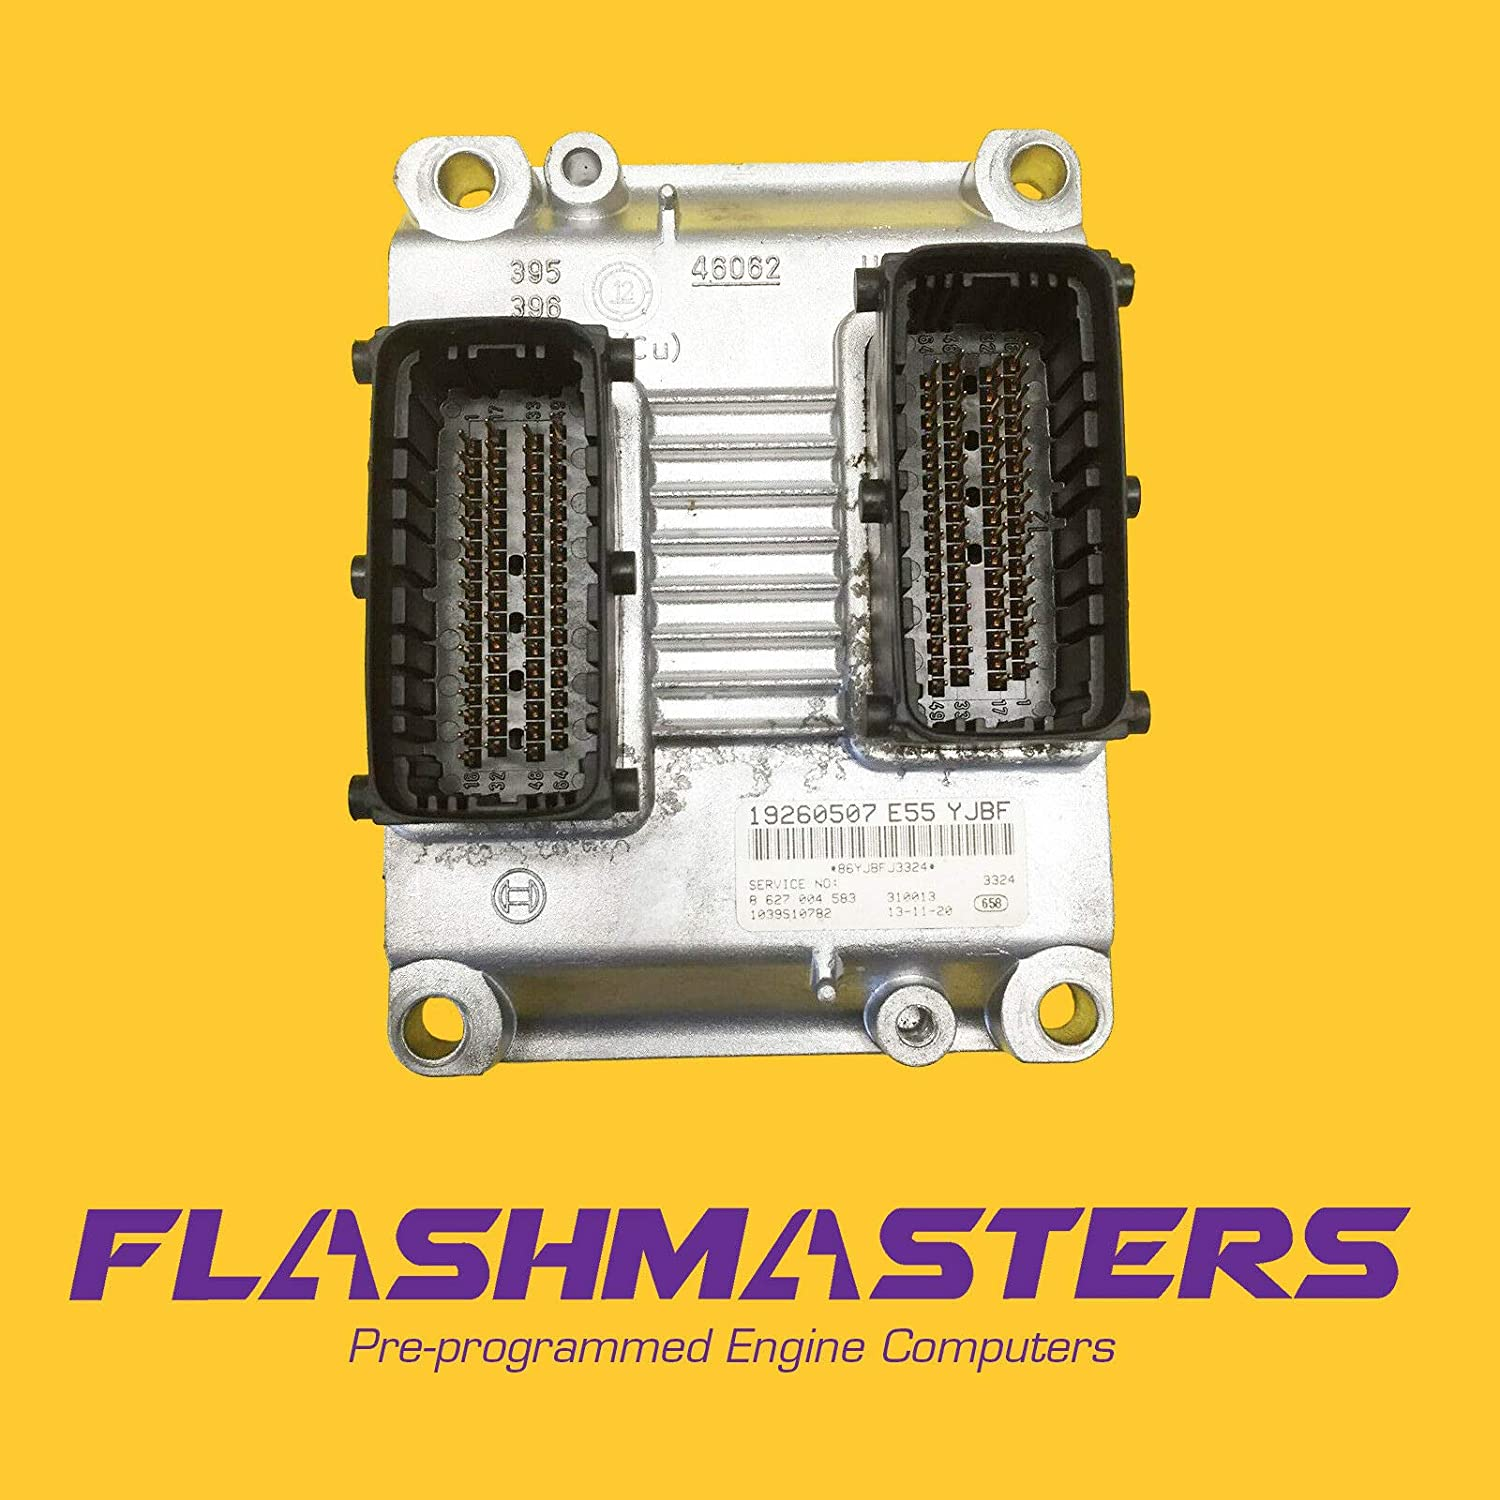 Flashmasters 2006 CTS V6 Live Engine Computer Programmed New mail order Tested OFFicial site